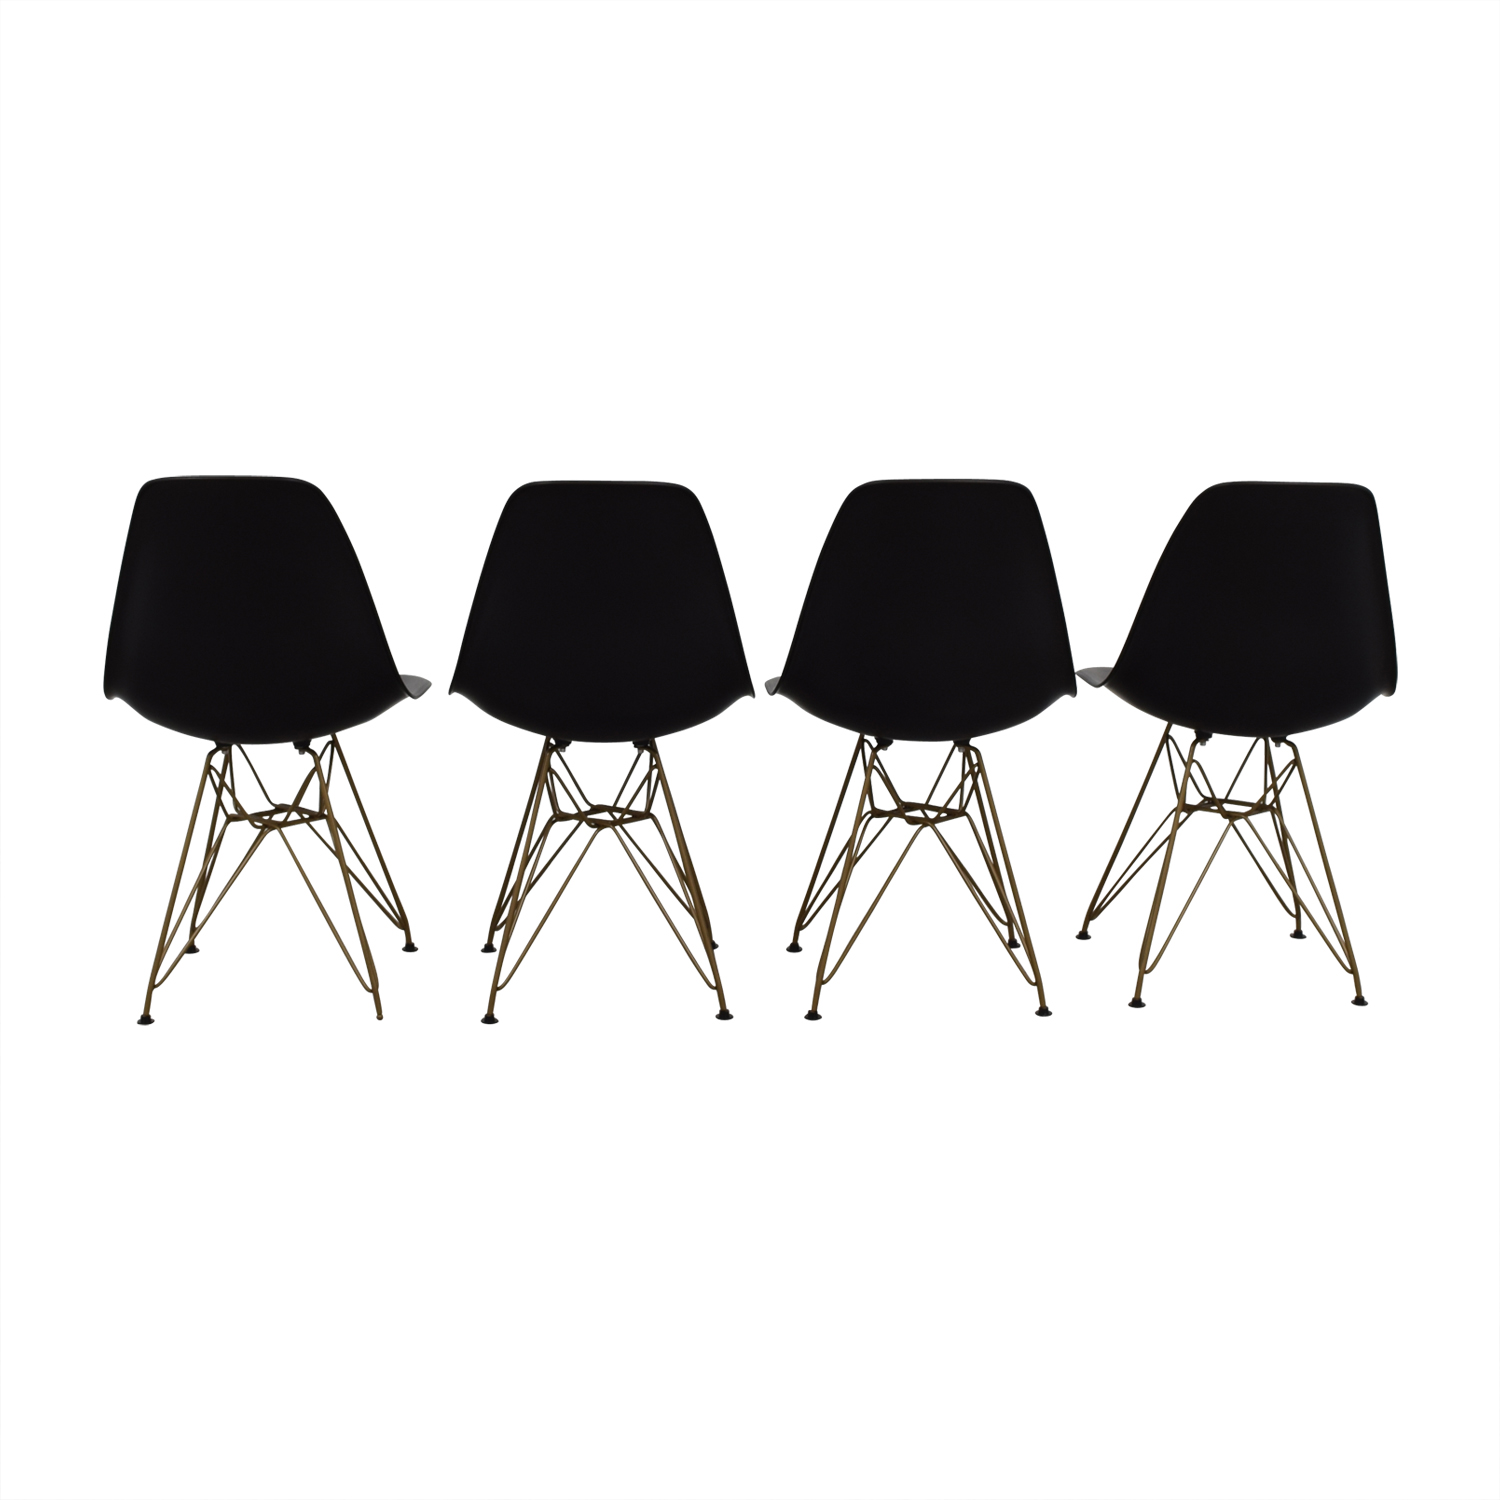 Junia Junia Black Side Chairs discount